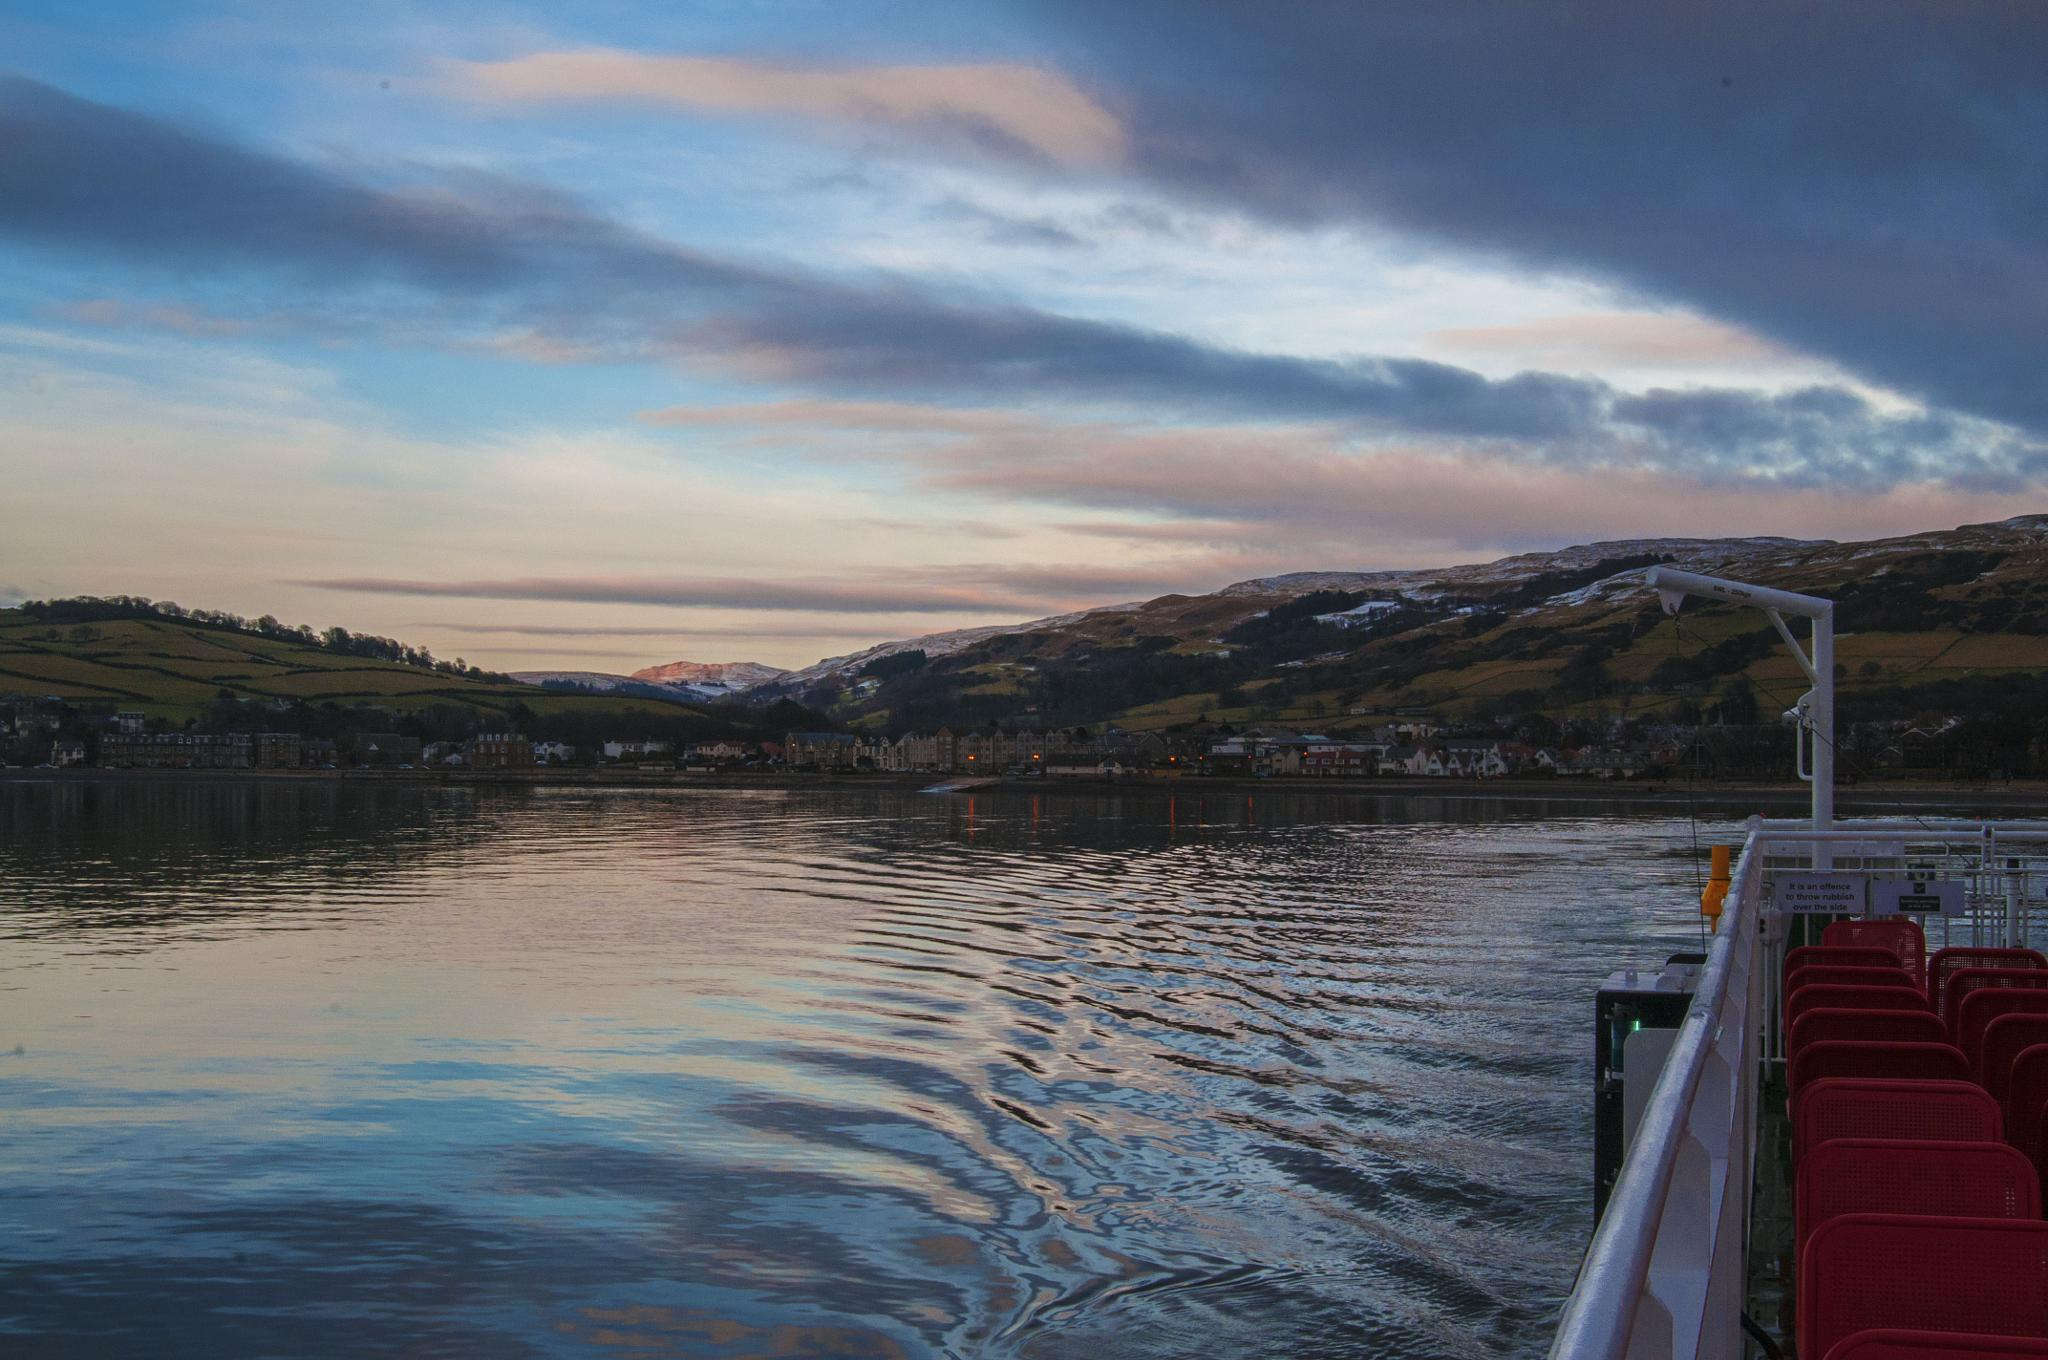 Ferry Home by acawley1